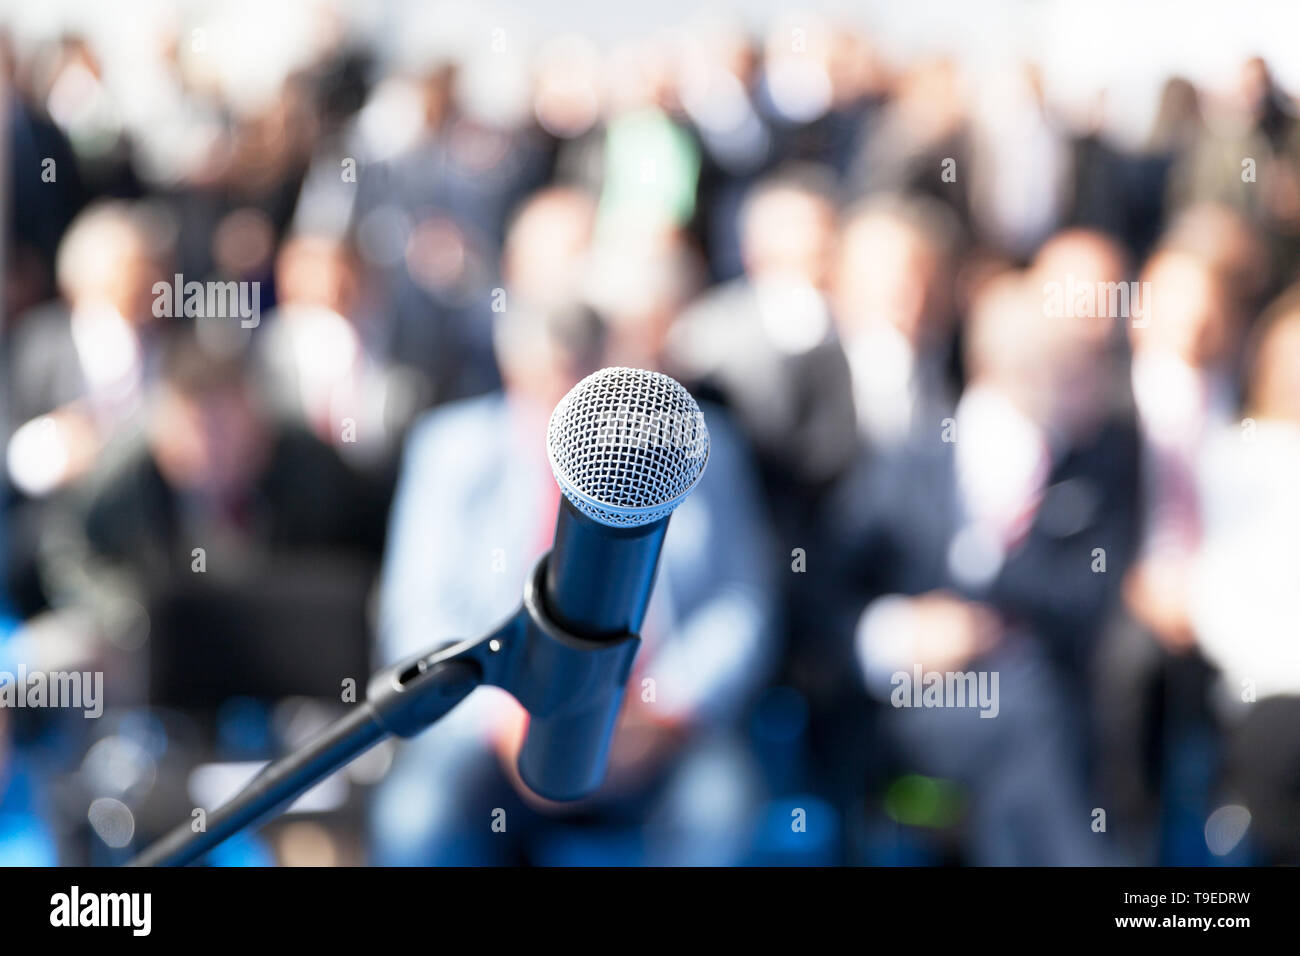 Business presentation or corporate conference - Stock Image